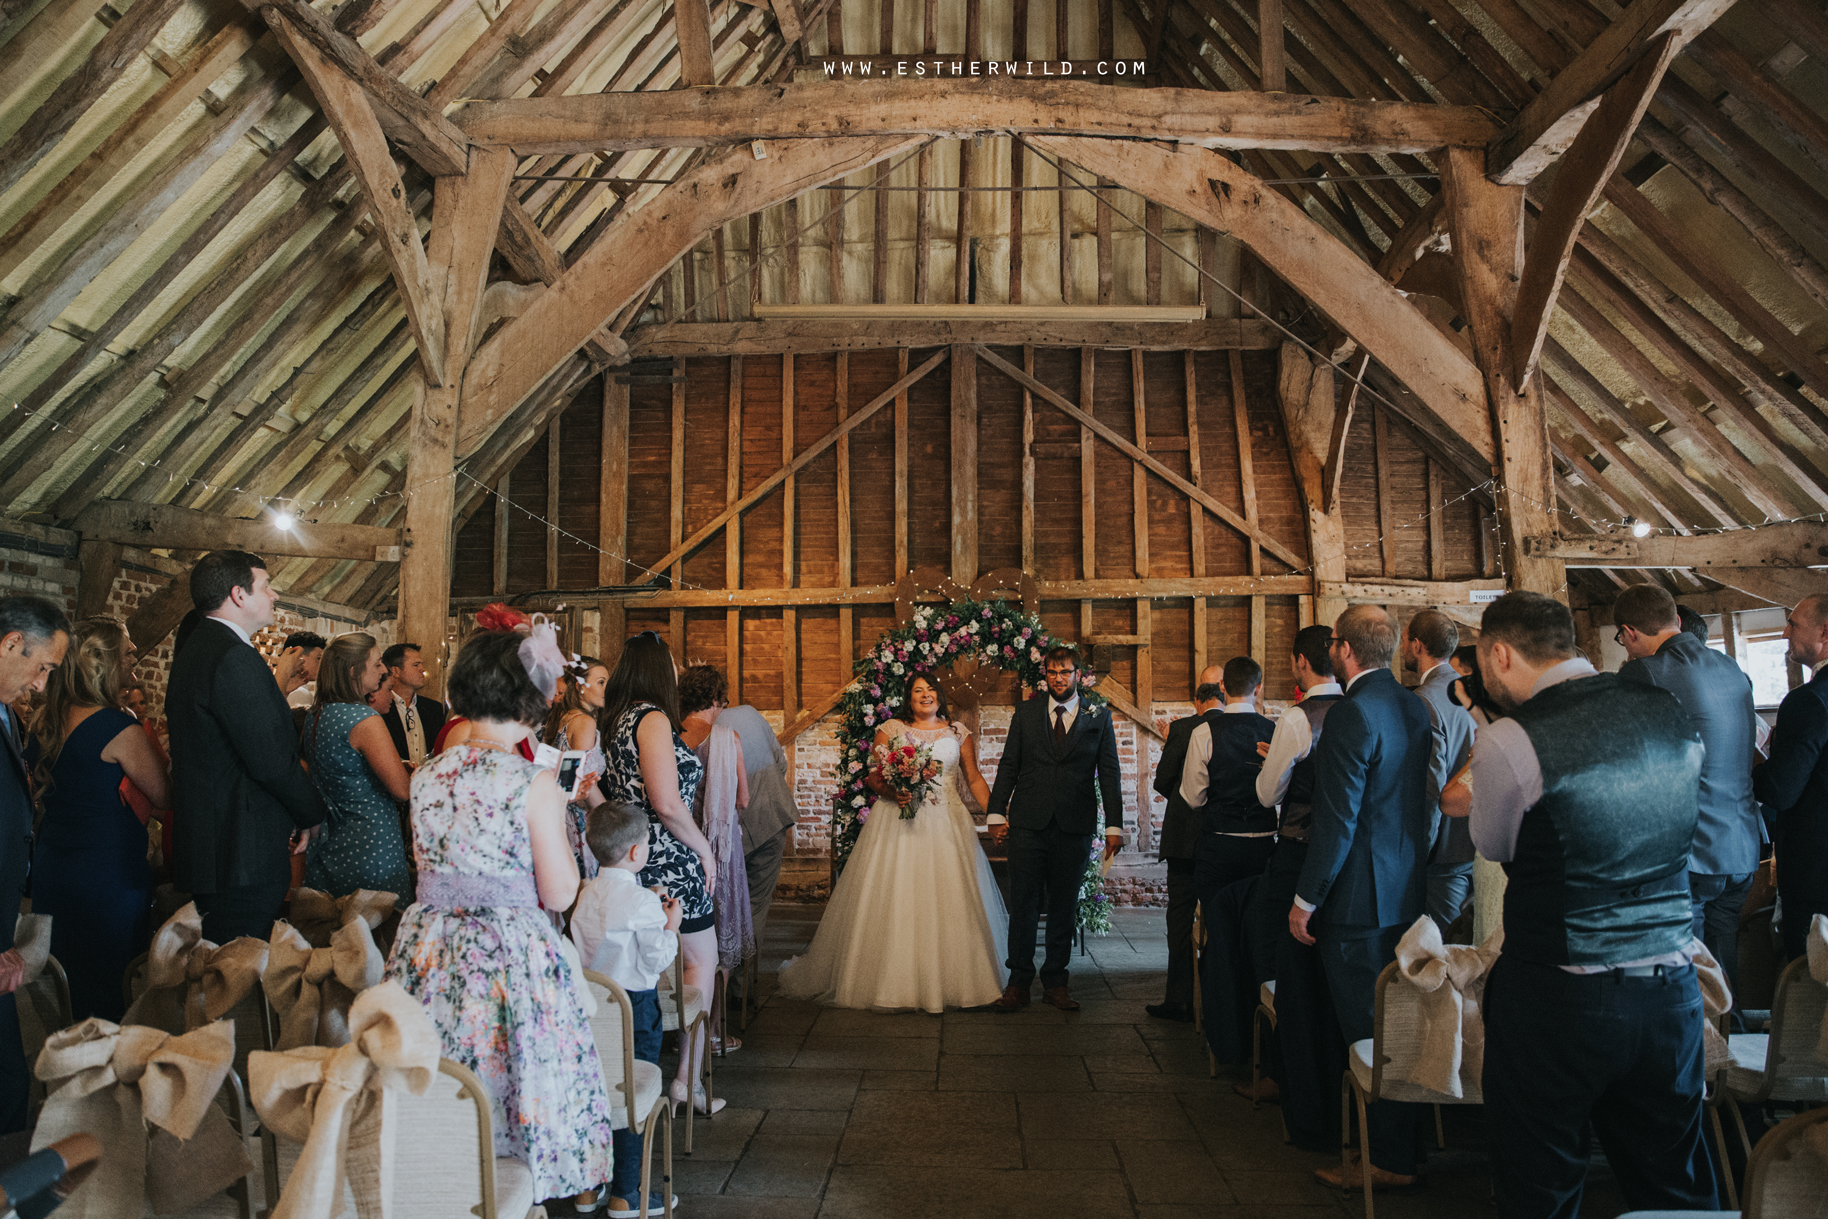 The_Red_Barn_Wedding_Kings_Lynn_Norfolk_IMG_0988.jpg